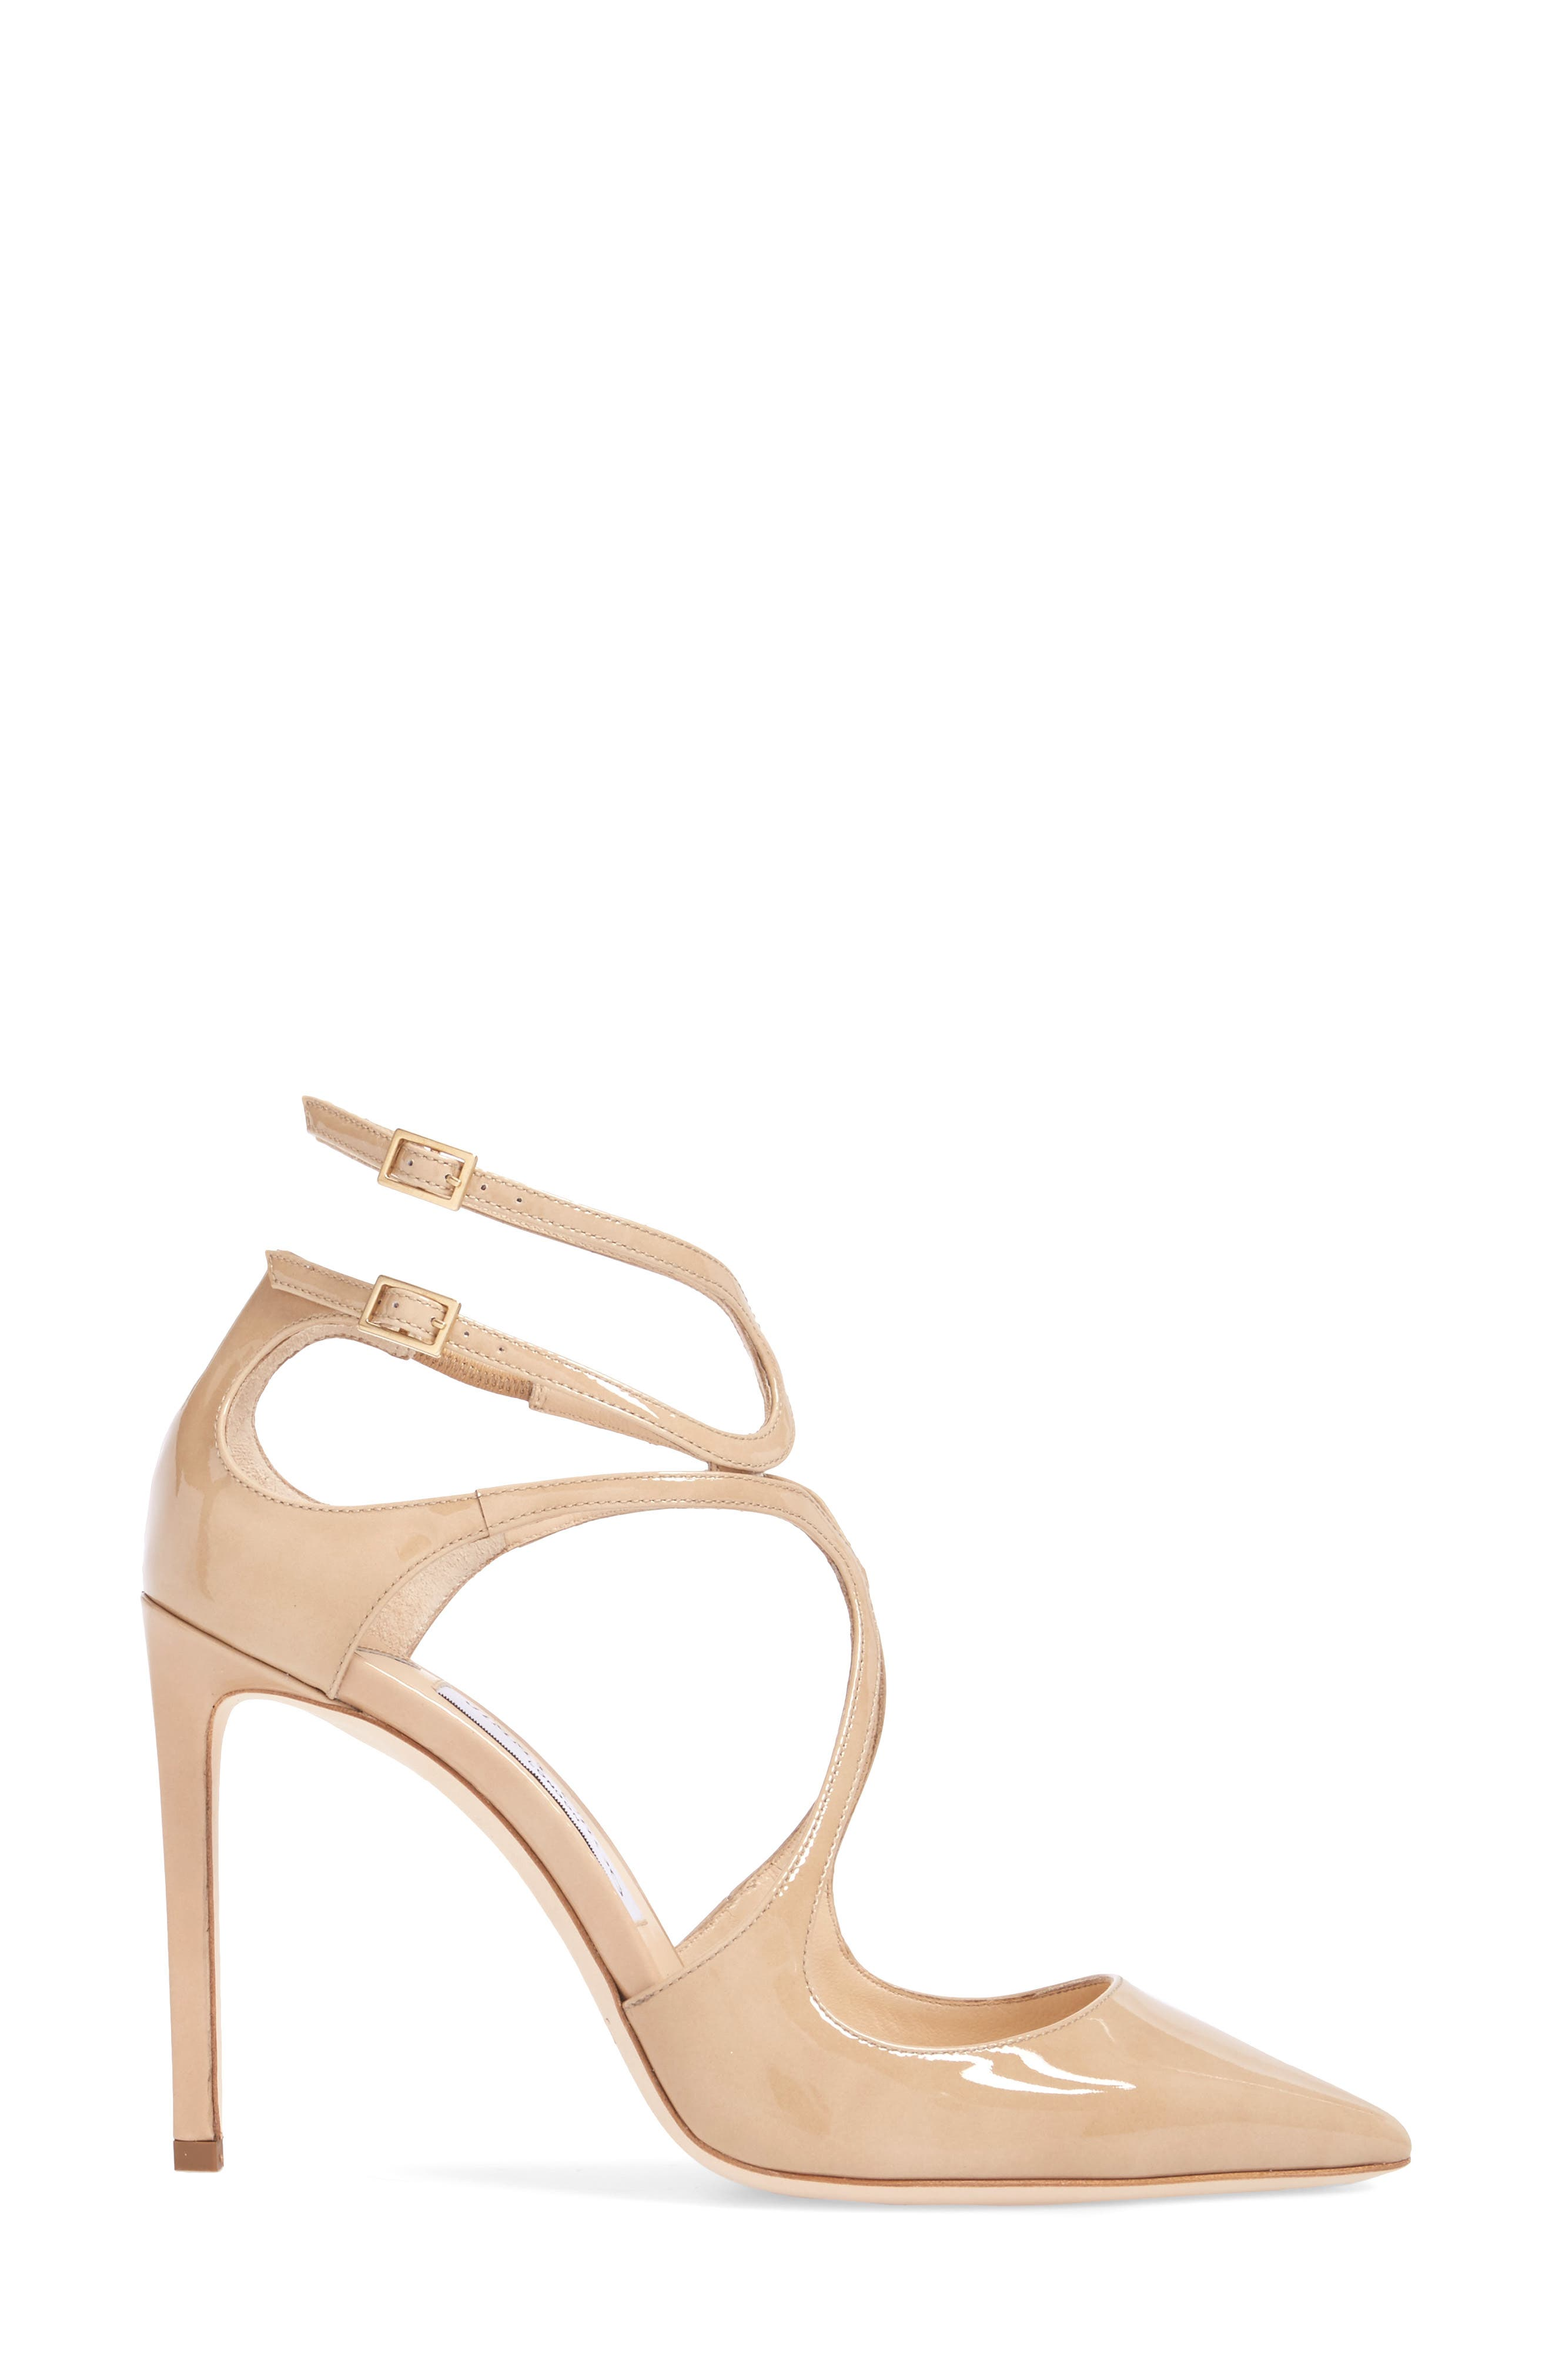 Lancer Strappy Pump,                             Alternate thumbnail 3, color,                             NUDE PATENT